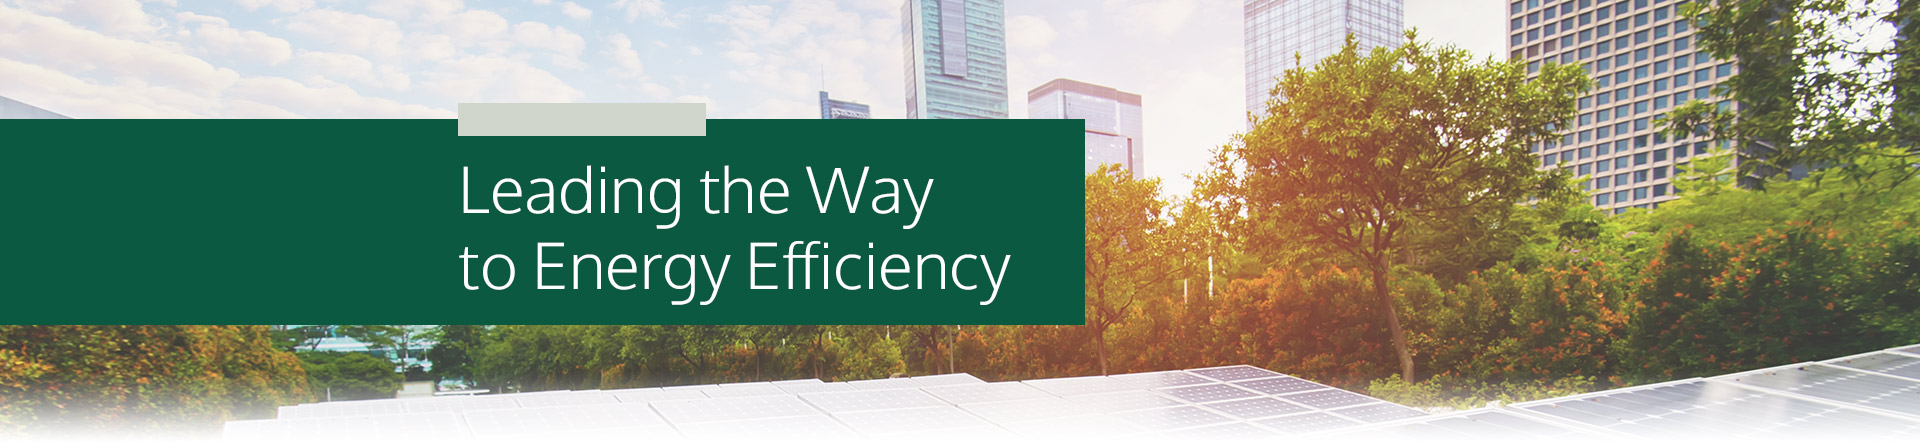 Energy Efficiency and Carbon Reduction